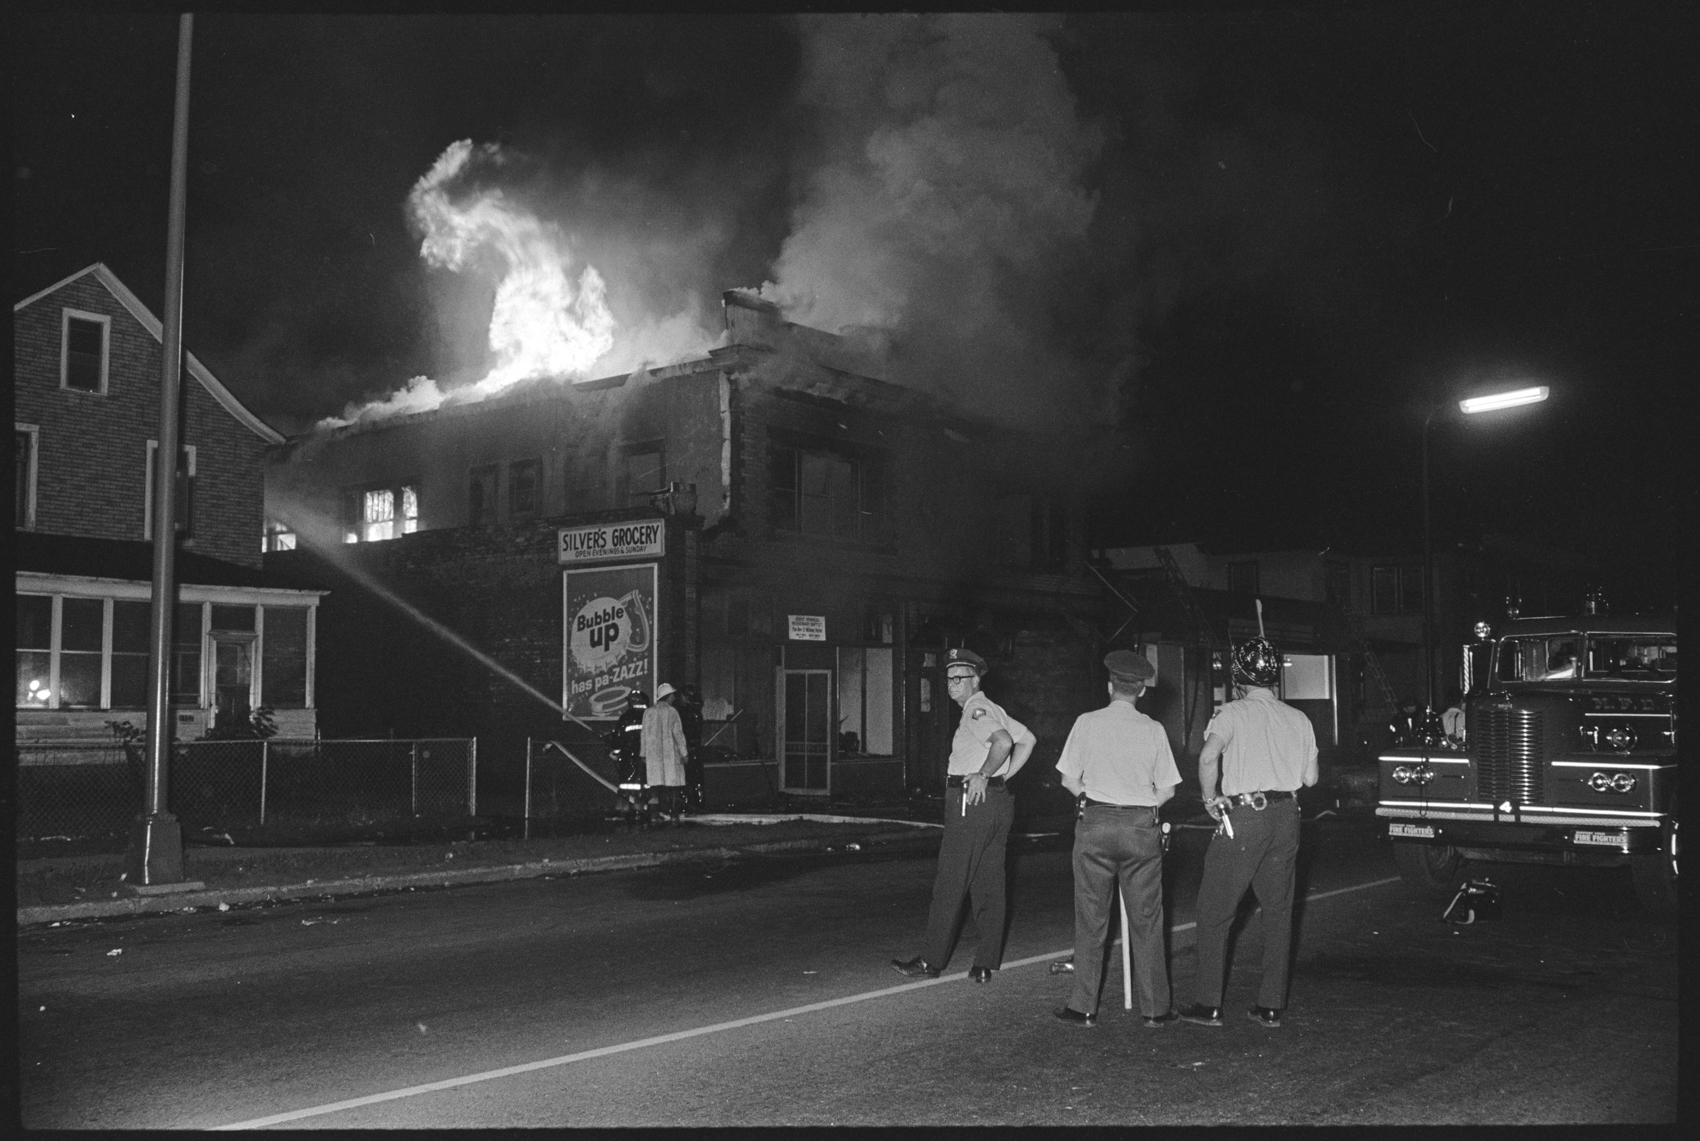 A Fiery Unrest: Why Plymouth Avenue Burned